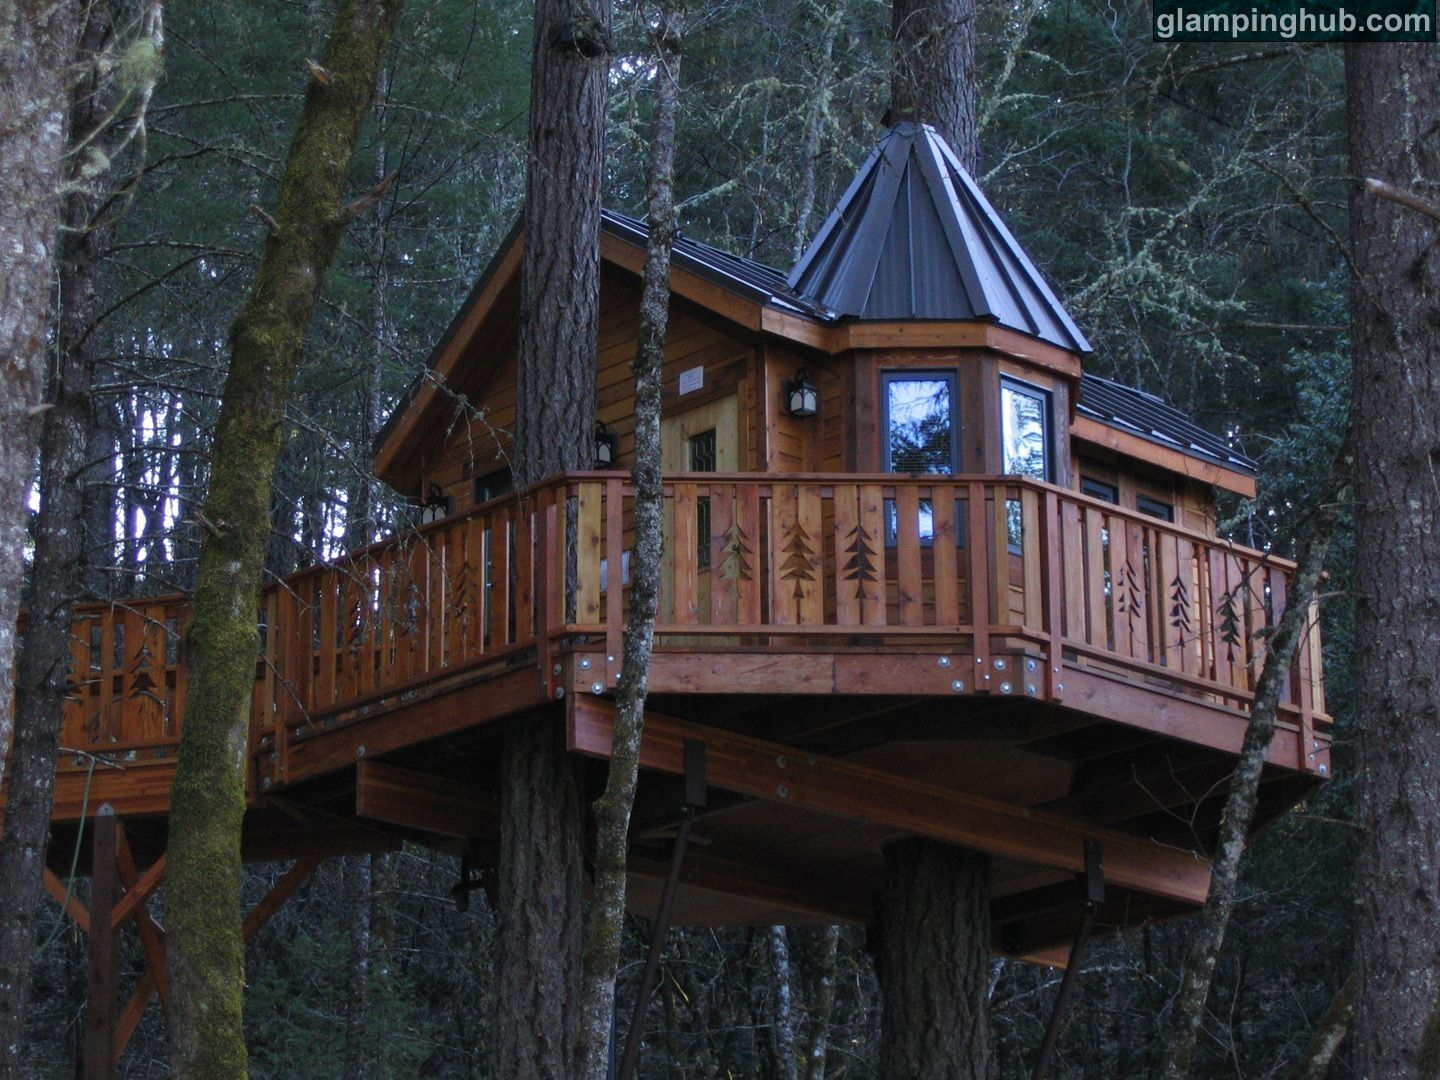 Upscale Bed And Breakfast Oregon Luxury Camping Oregon Tree Lodges Oregon  Camping Oregon Forests